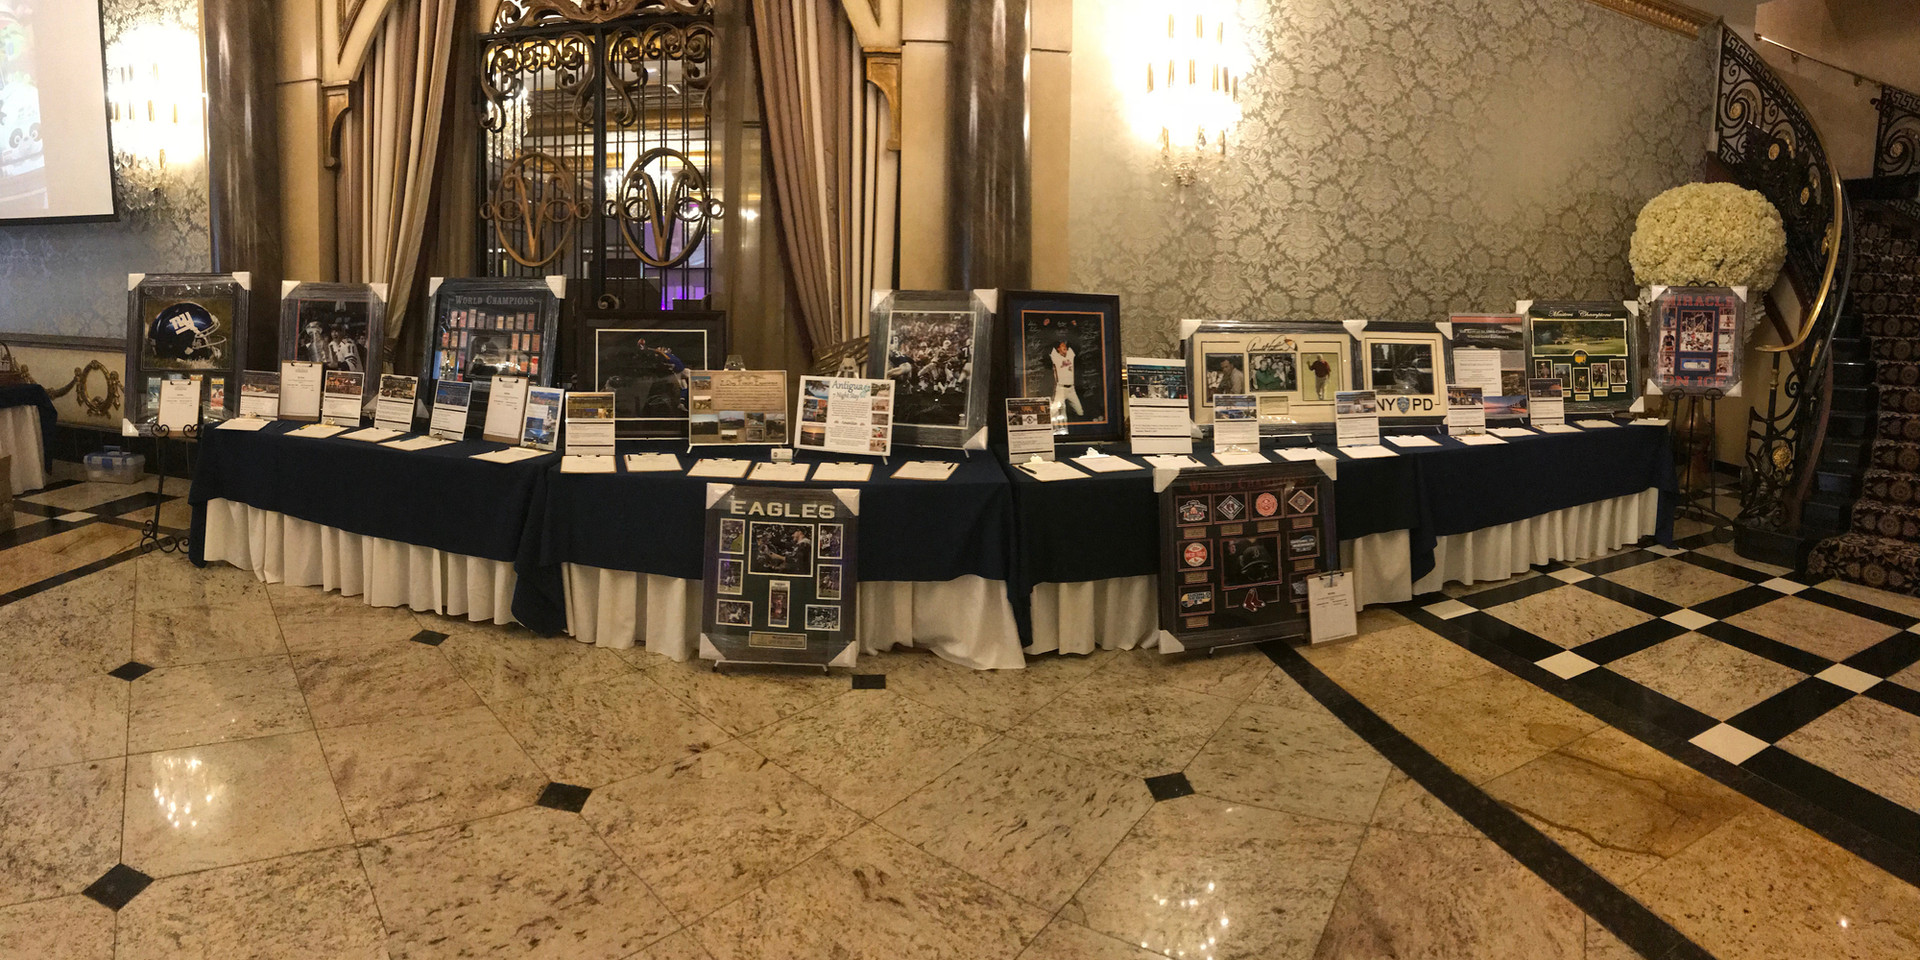 Brenner Foundation Auction Display